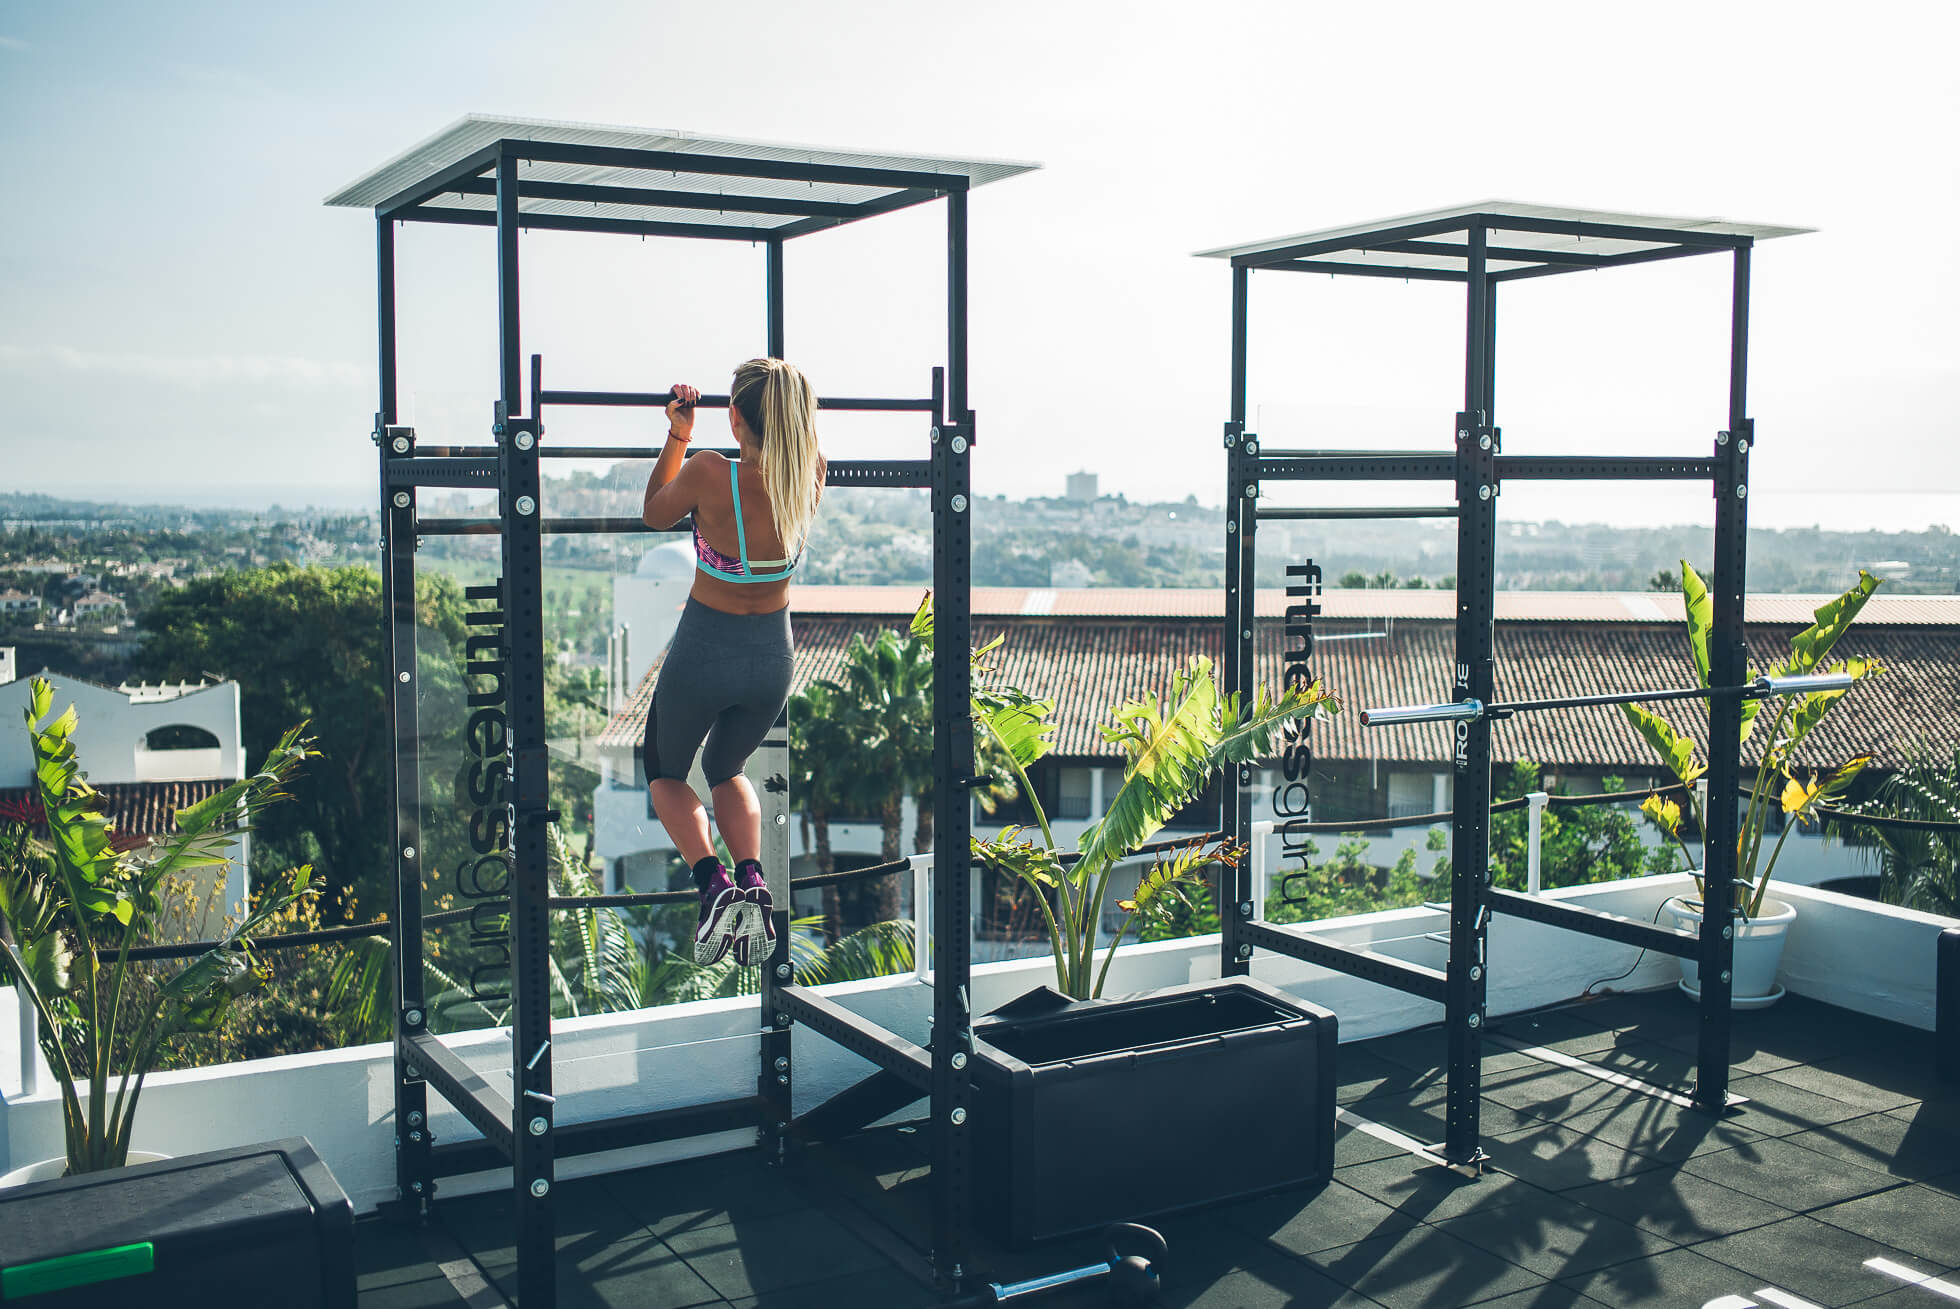 janni-deler-rooftop-workoutL1009050